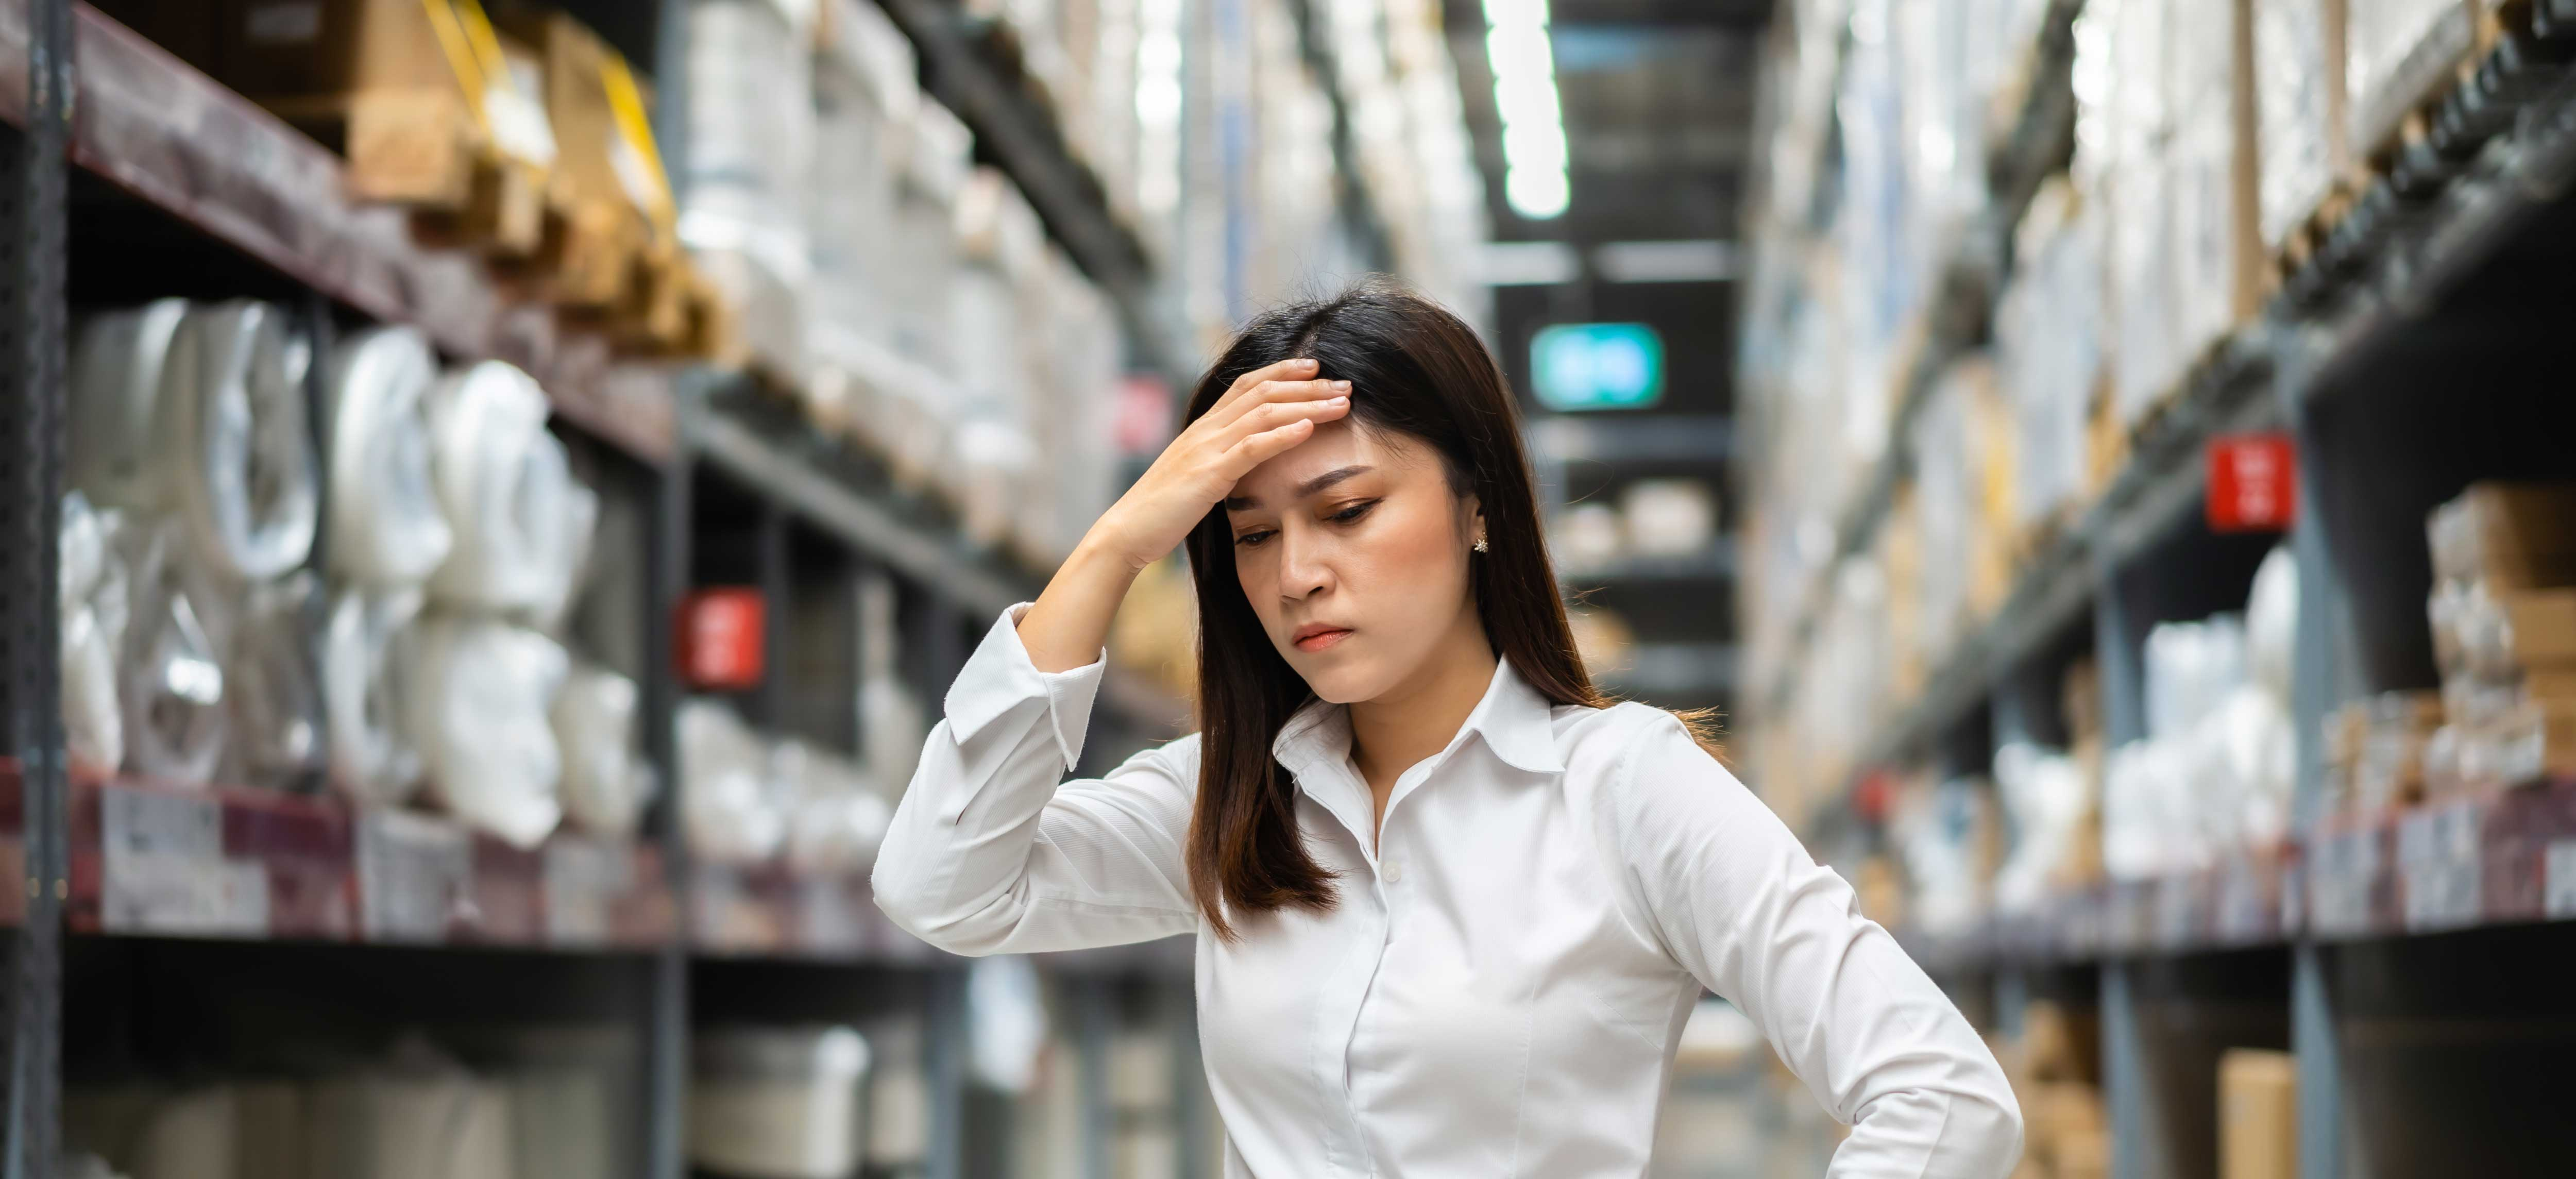 stressed-female-manager-warehouse-store